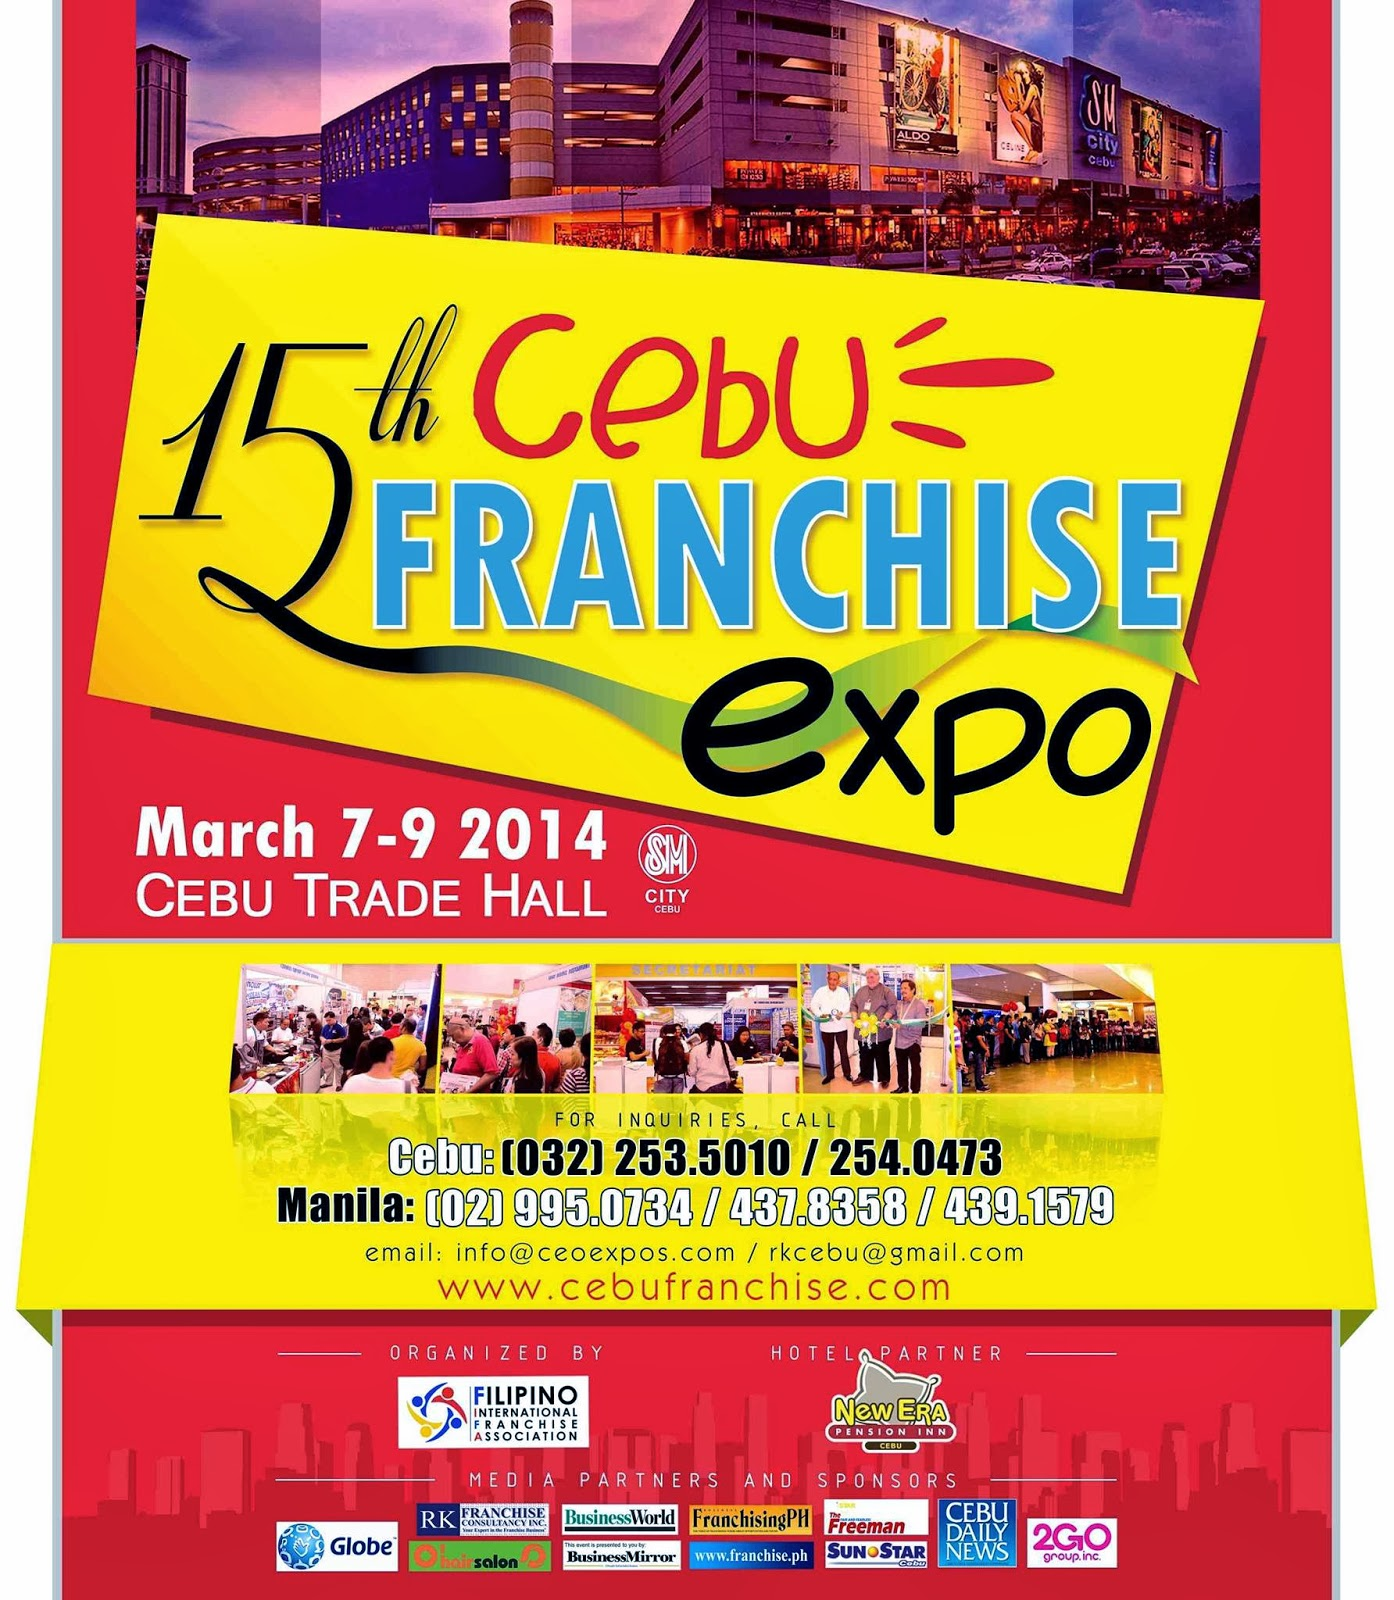 15th_Cebu_Franchise_Expo_SM_City